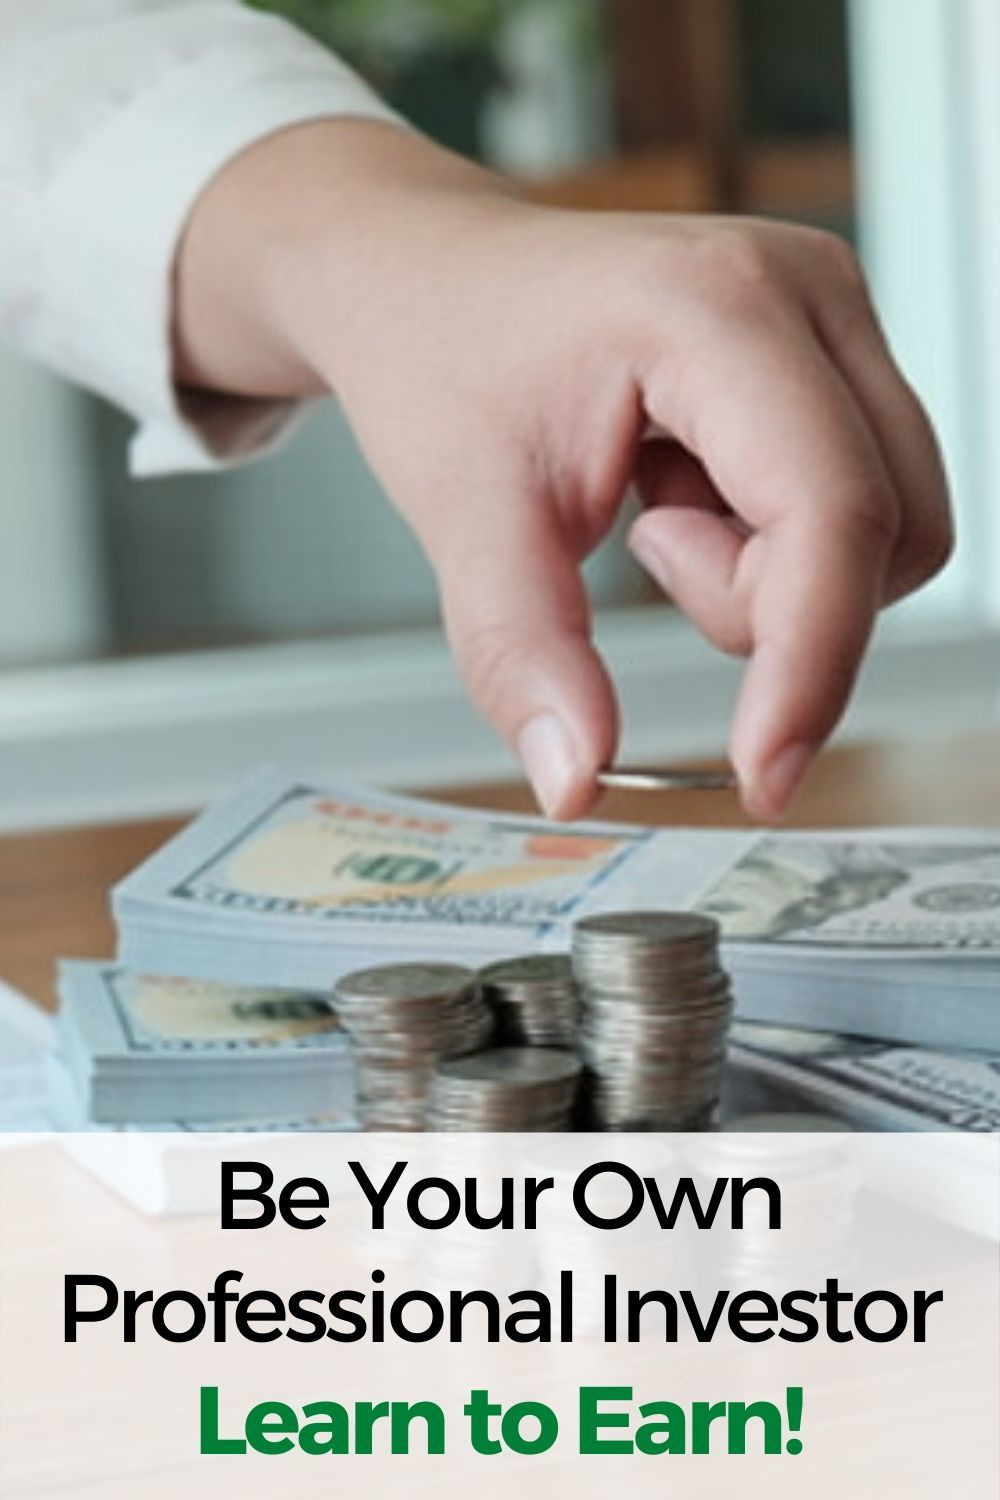 Be Your Own Professional Investor